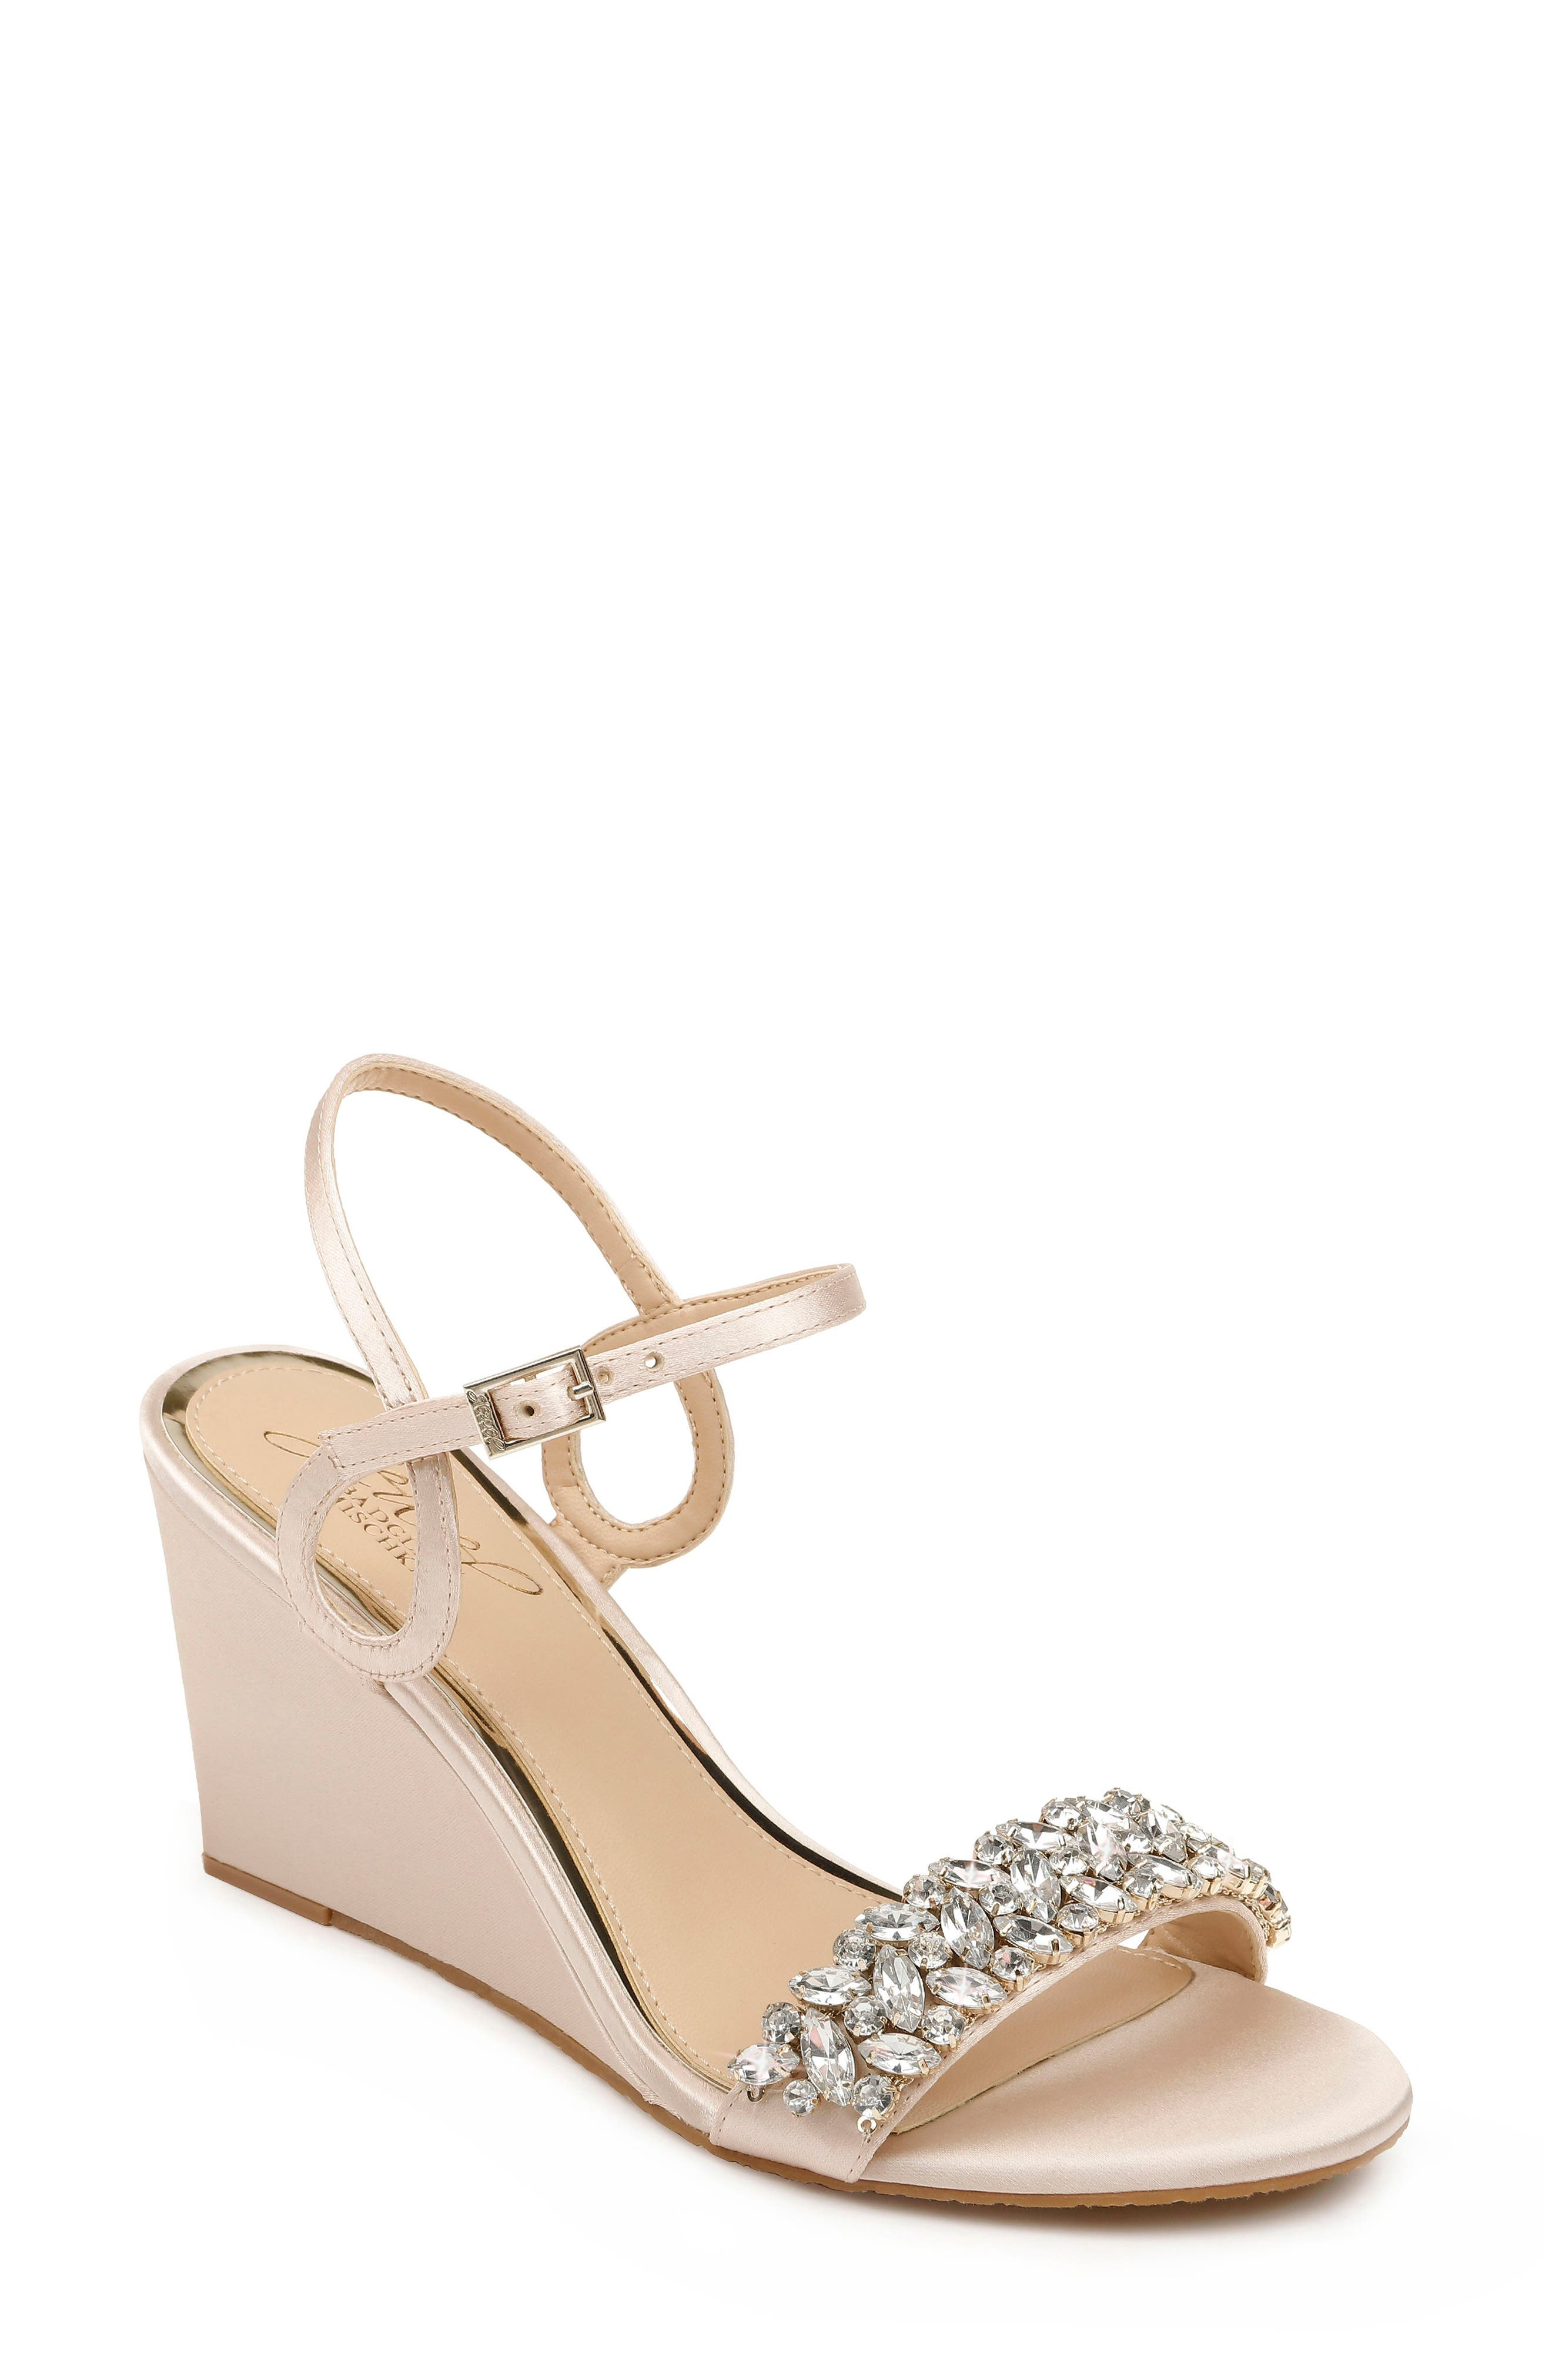 Twinkling crystals dazzle at the toe strap of a wedge-heel sandal finished with a flourish thanks to a curlicue quarter strap. Style Name: Jewel Badgley Mischka Noralie Wedge Sandal (Women). Style Number: 5999002 1. Available in stores.